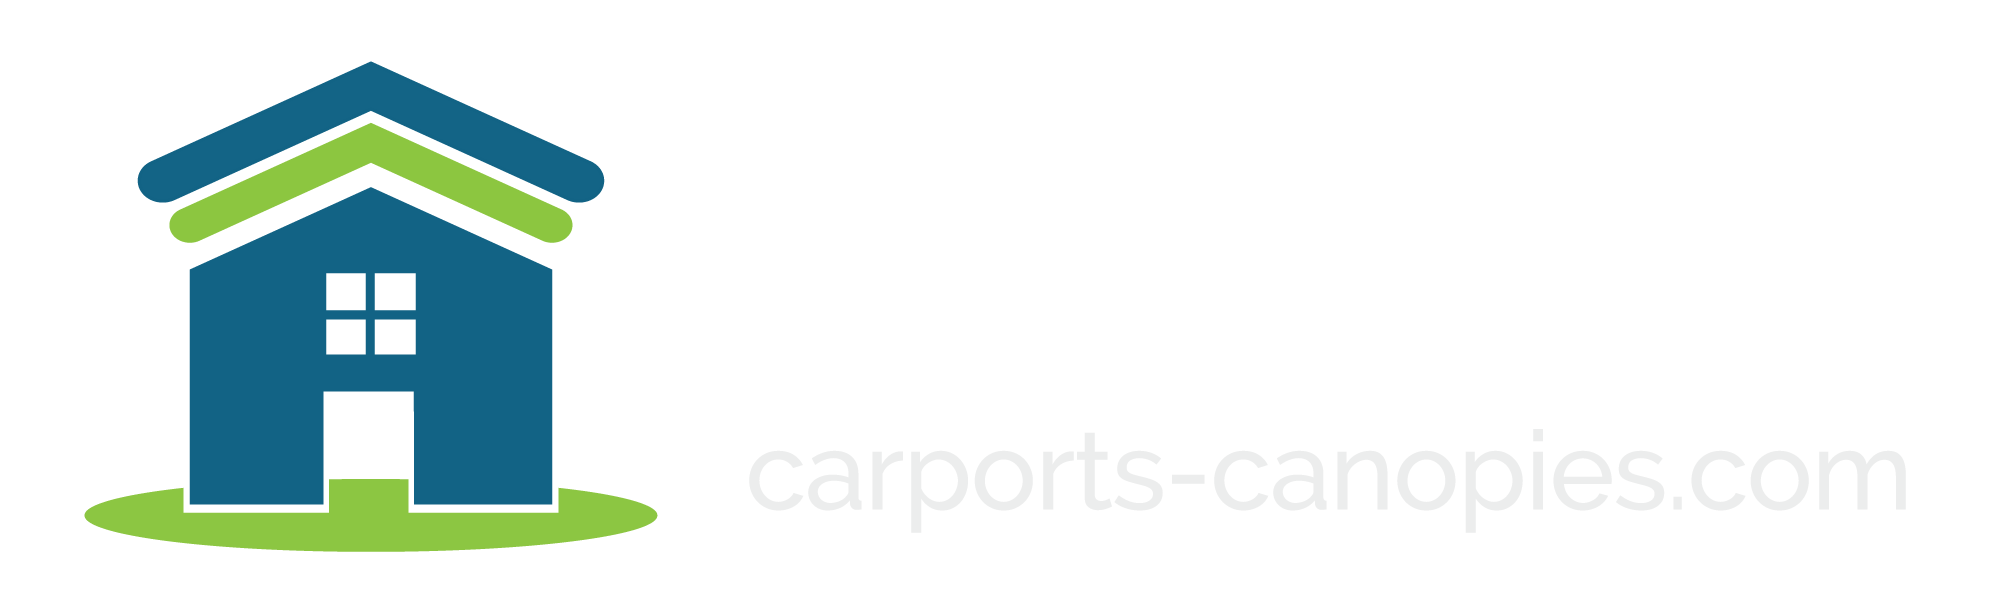 Kappion Carports & Canopies